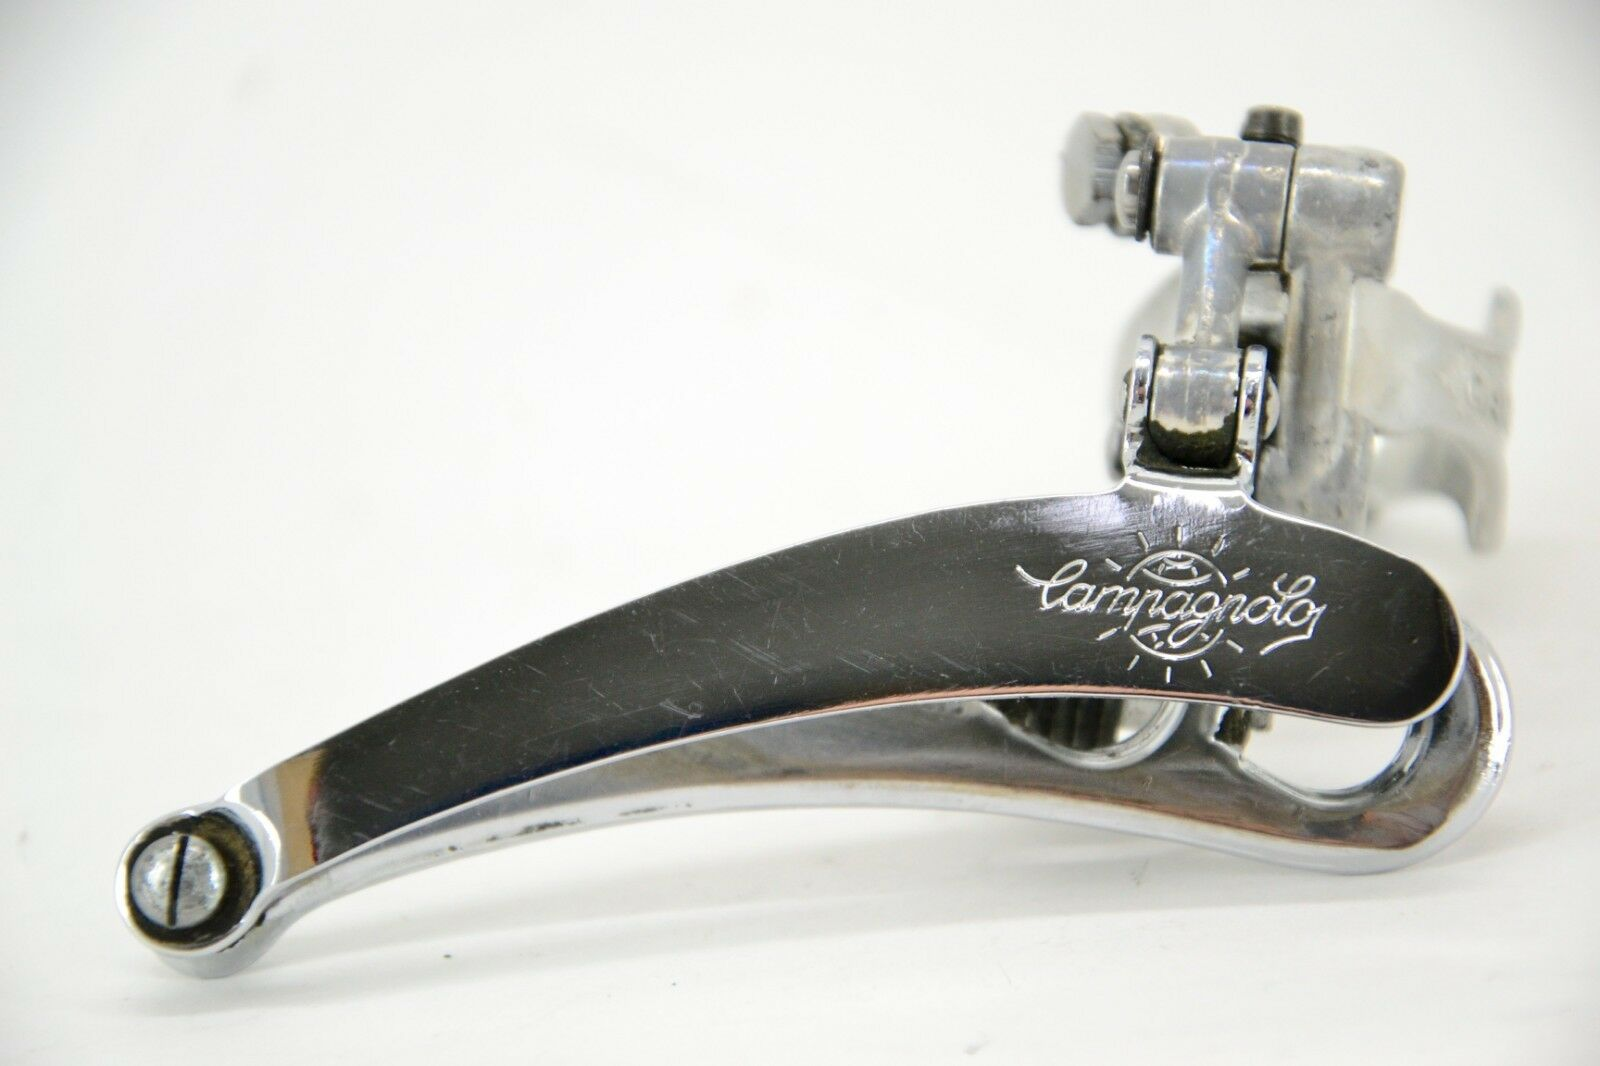 Campagnolo Nuovo Record Front Derailleur No Holes No Lip 28.6mm  Clamp 1970s  select from the newest brands like